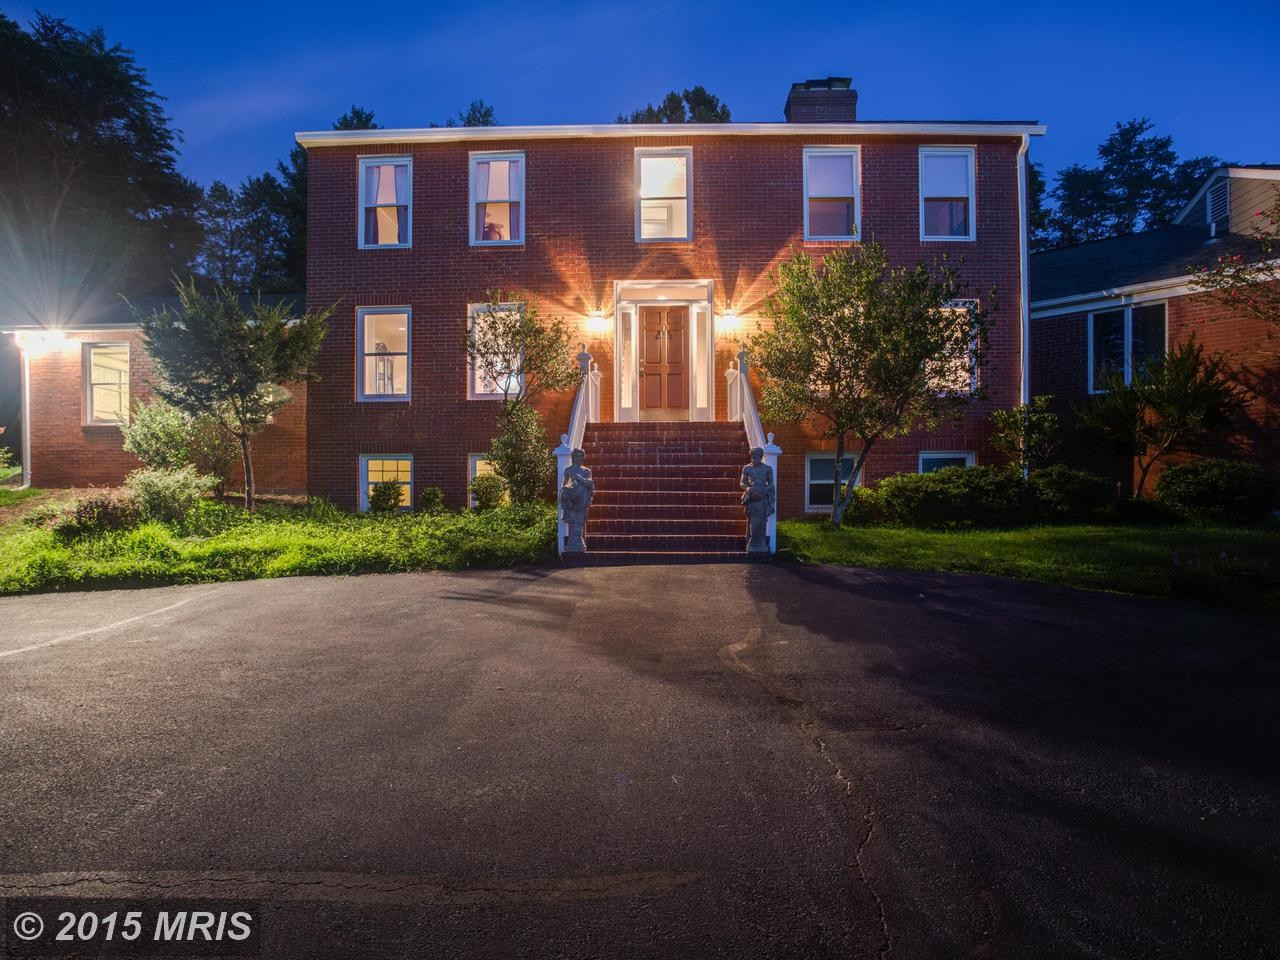 The McLean home owned by former Vice President Dan Quayle and his wife, Marilyn, will be sold at auction. (Courtesy MRIS)